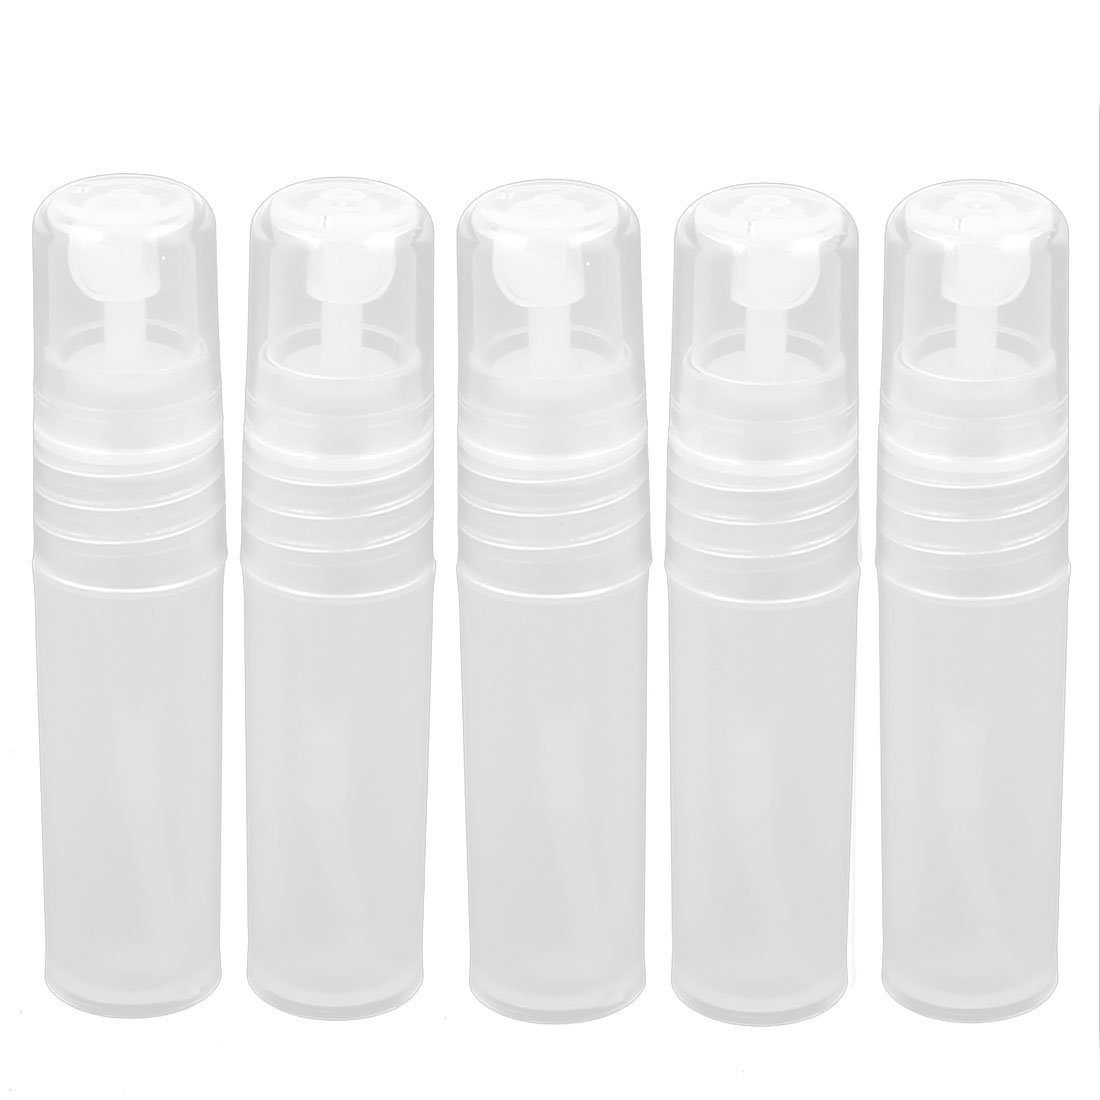 4pcs Plastic Cosmetic Skin Water Sprayer Spray Bottle Perfume Container Holder 3ml Clear